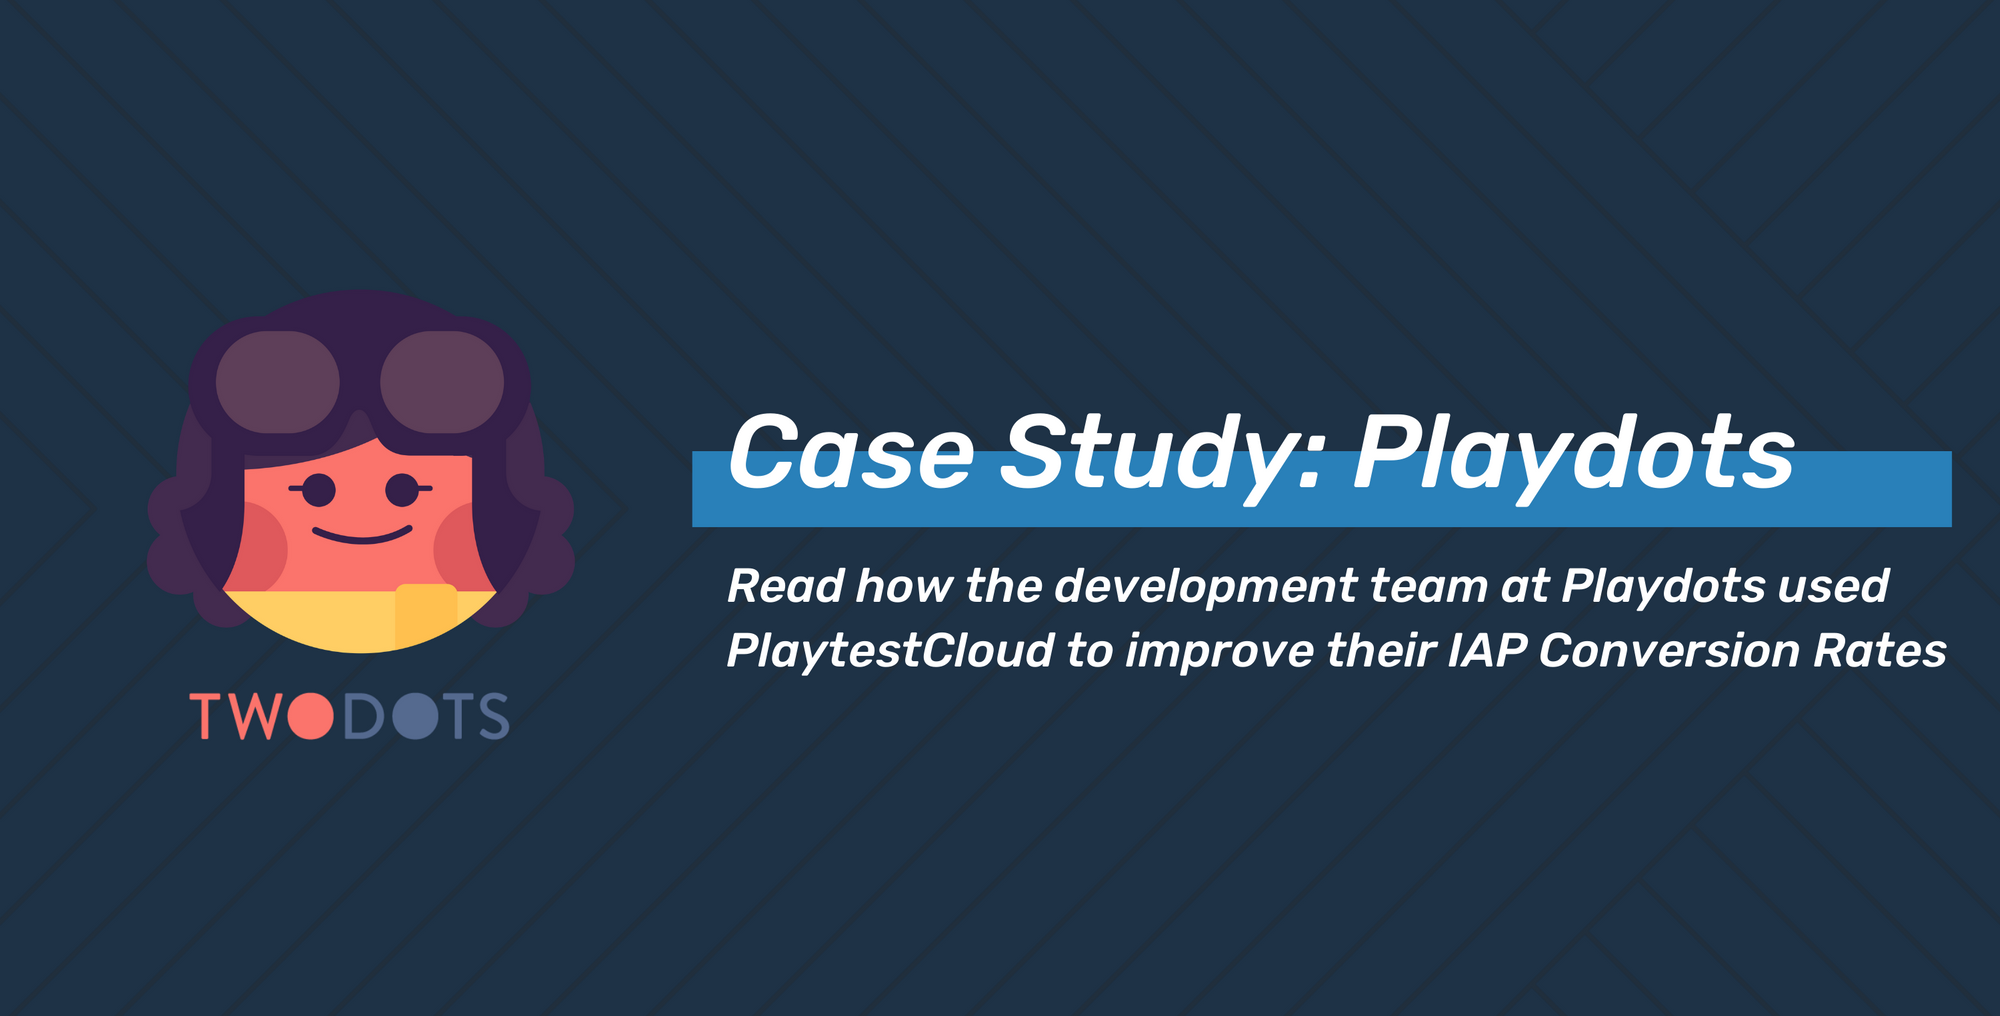 Case Study: Playdots